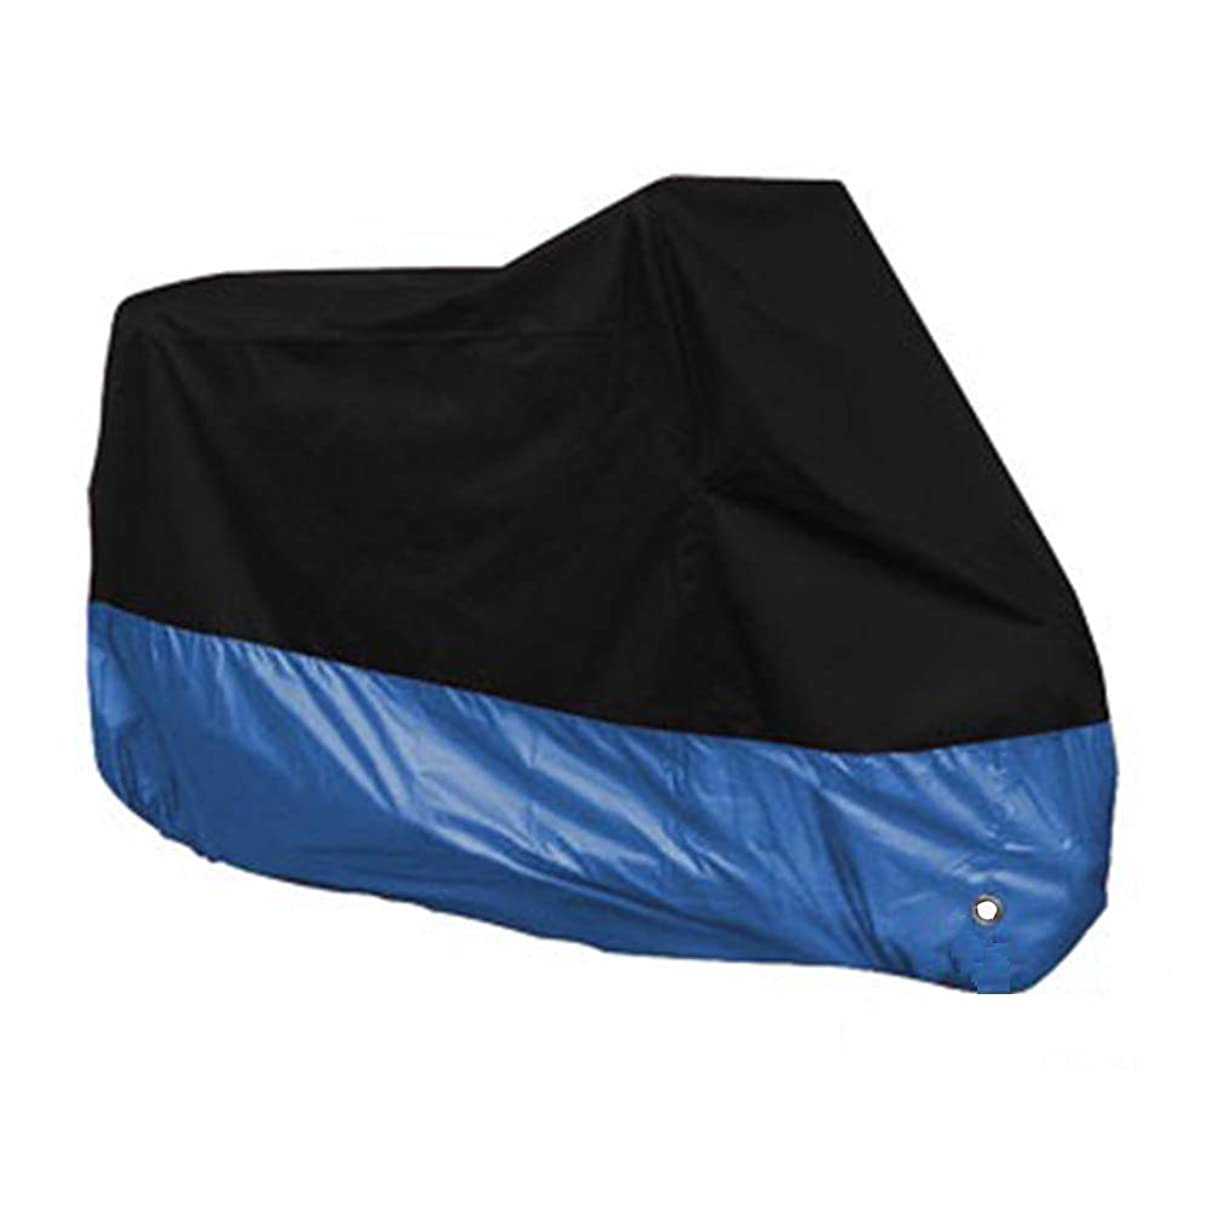 Waterproof Bike Cover Portable Dust-Proof Antirust Reusable, Multiple Sizes Available, WenMing Yue, a, XXXL